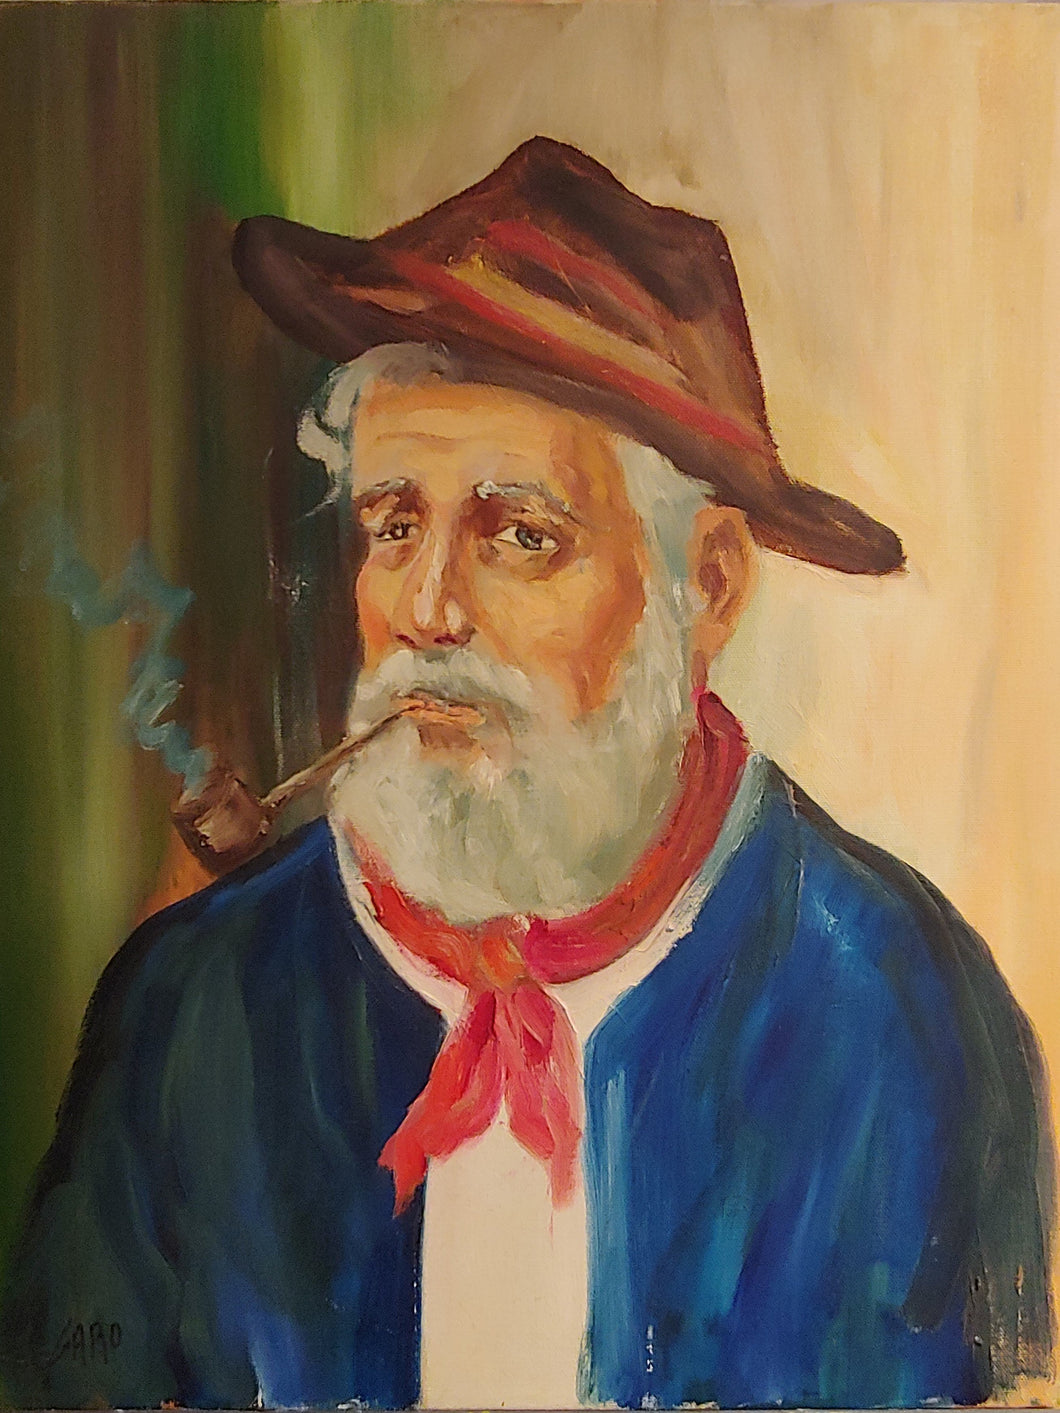 THE FISHERMAN / Original Canvas Painting - By Charles Garo Tatossian